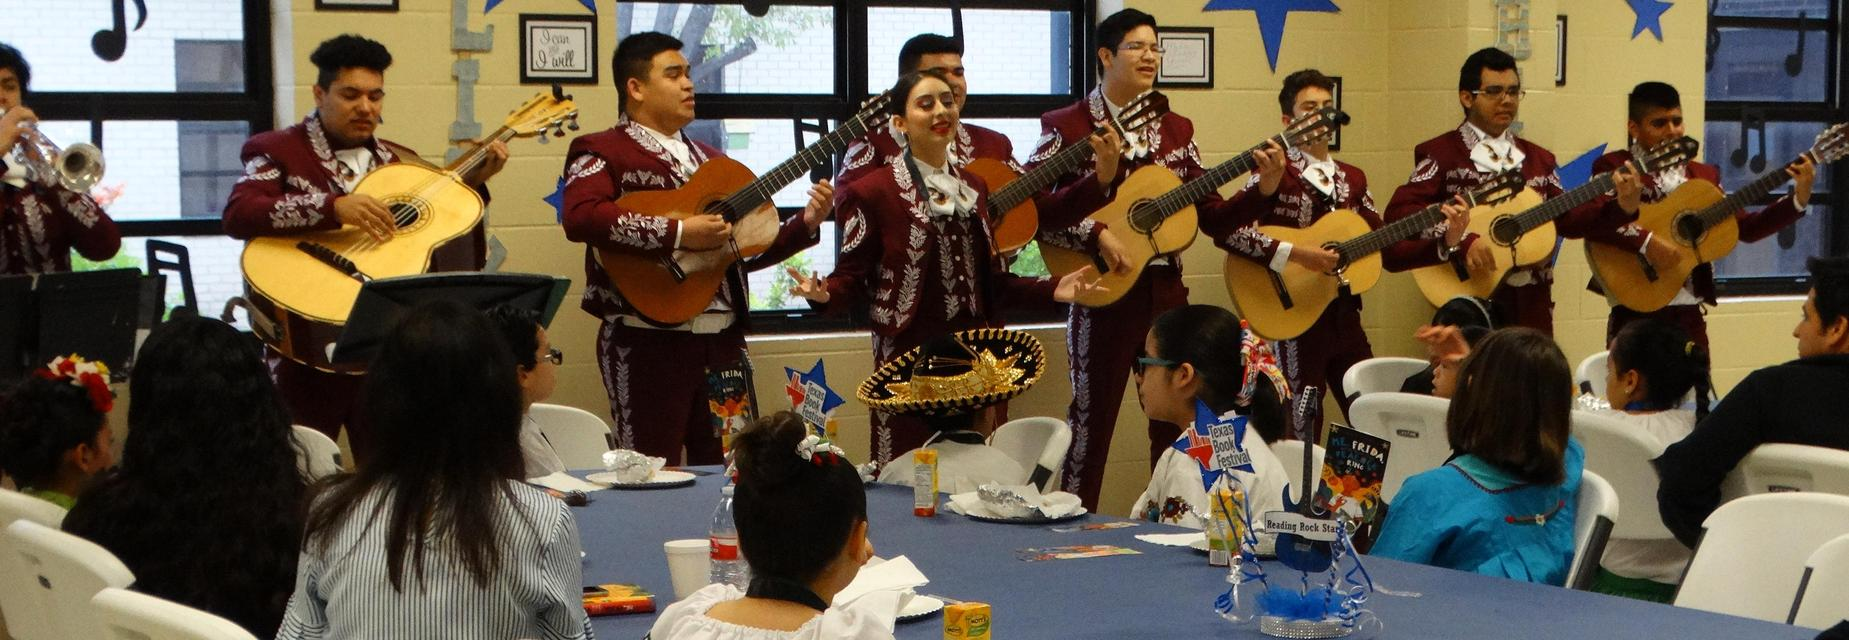 Mariachi performing at the Reading Rock Stars breakfast